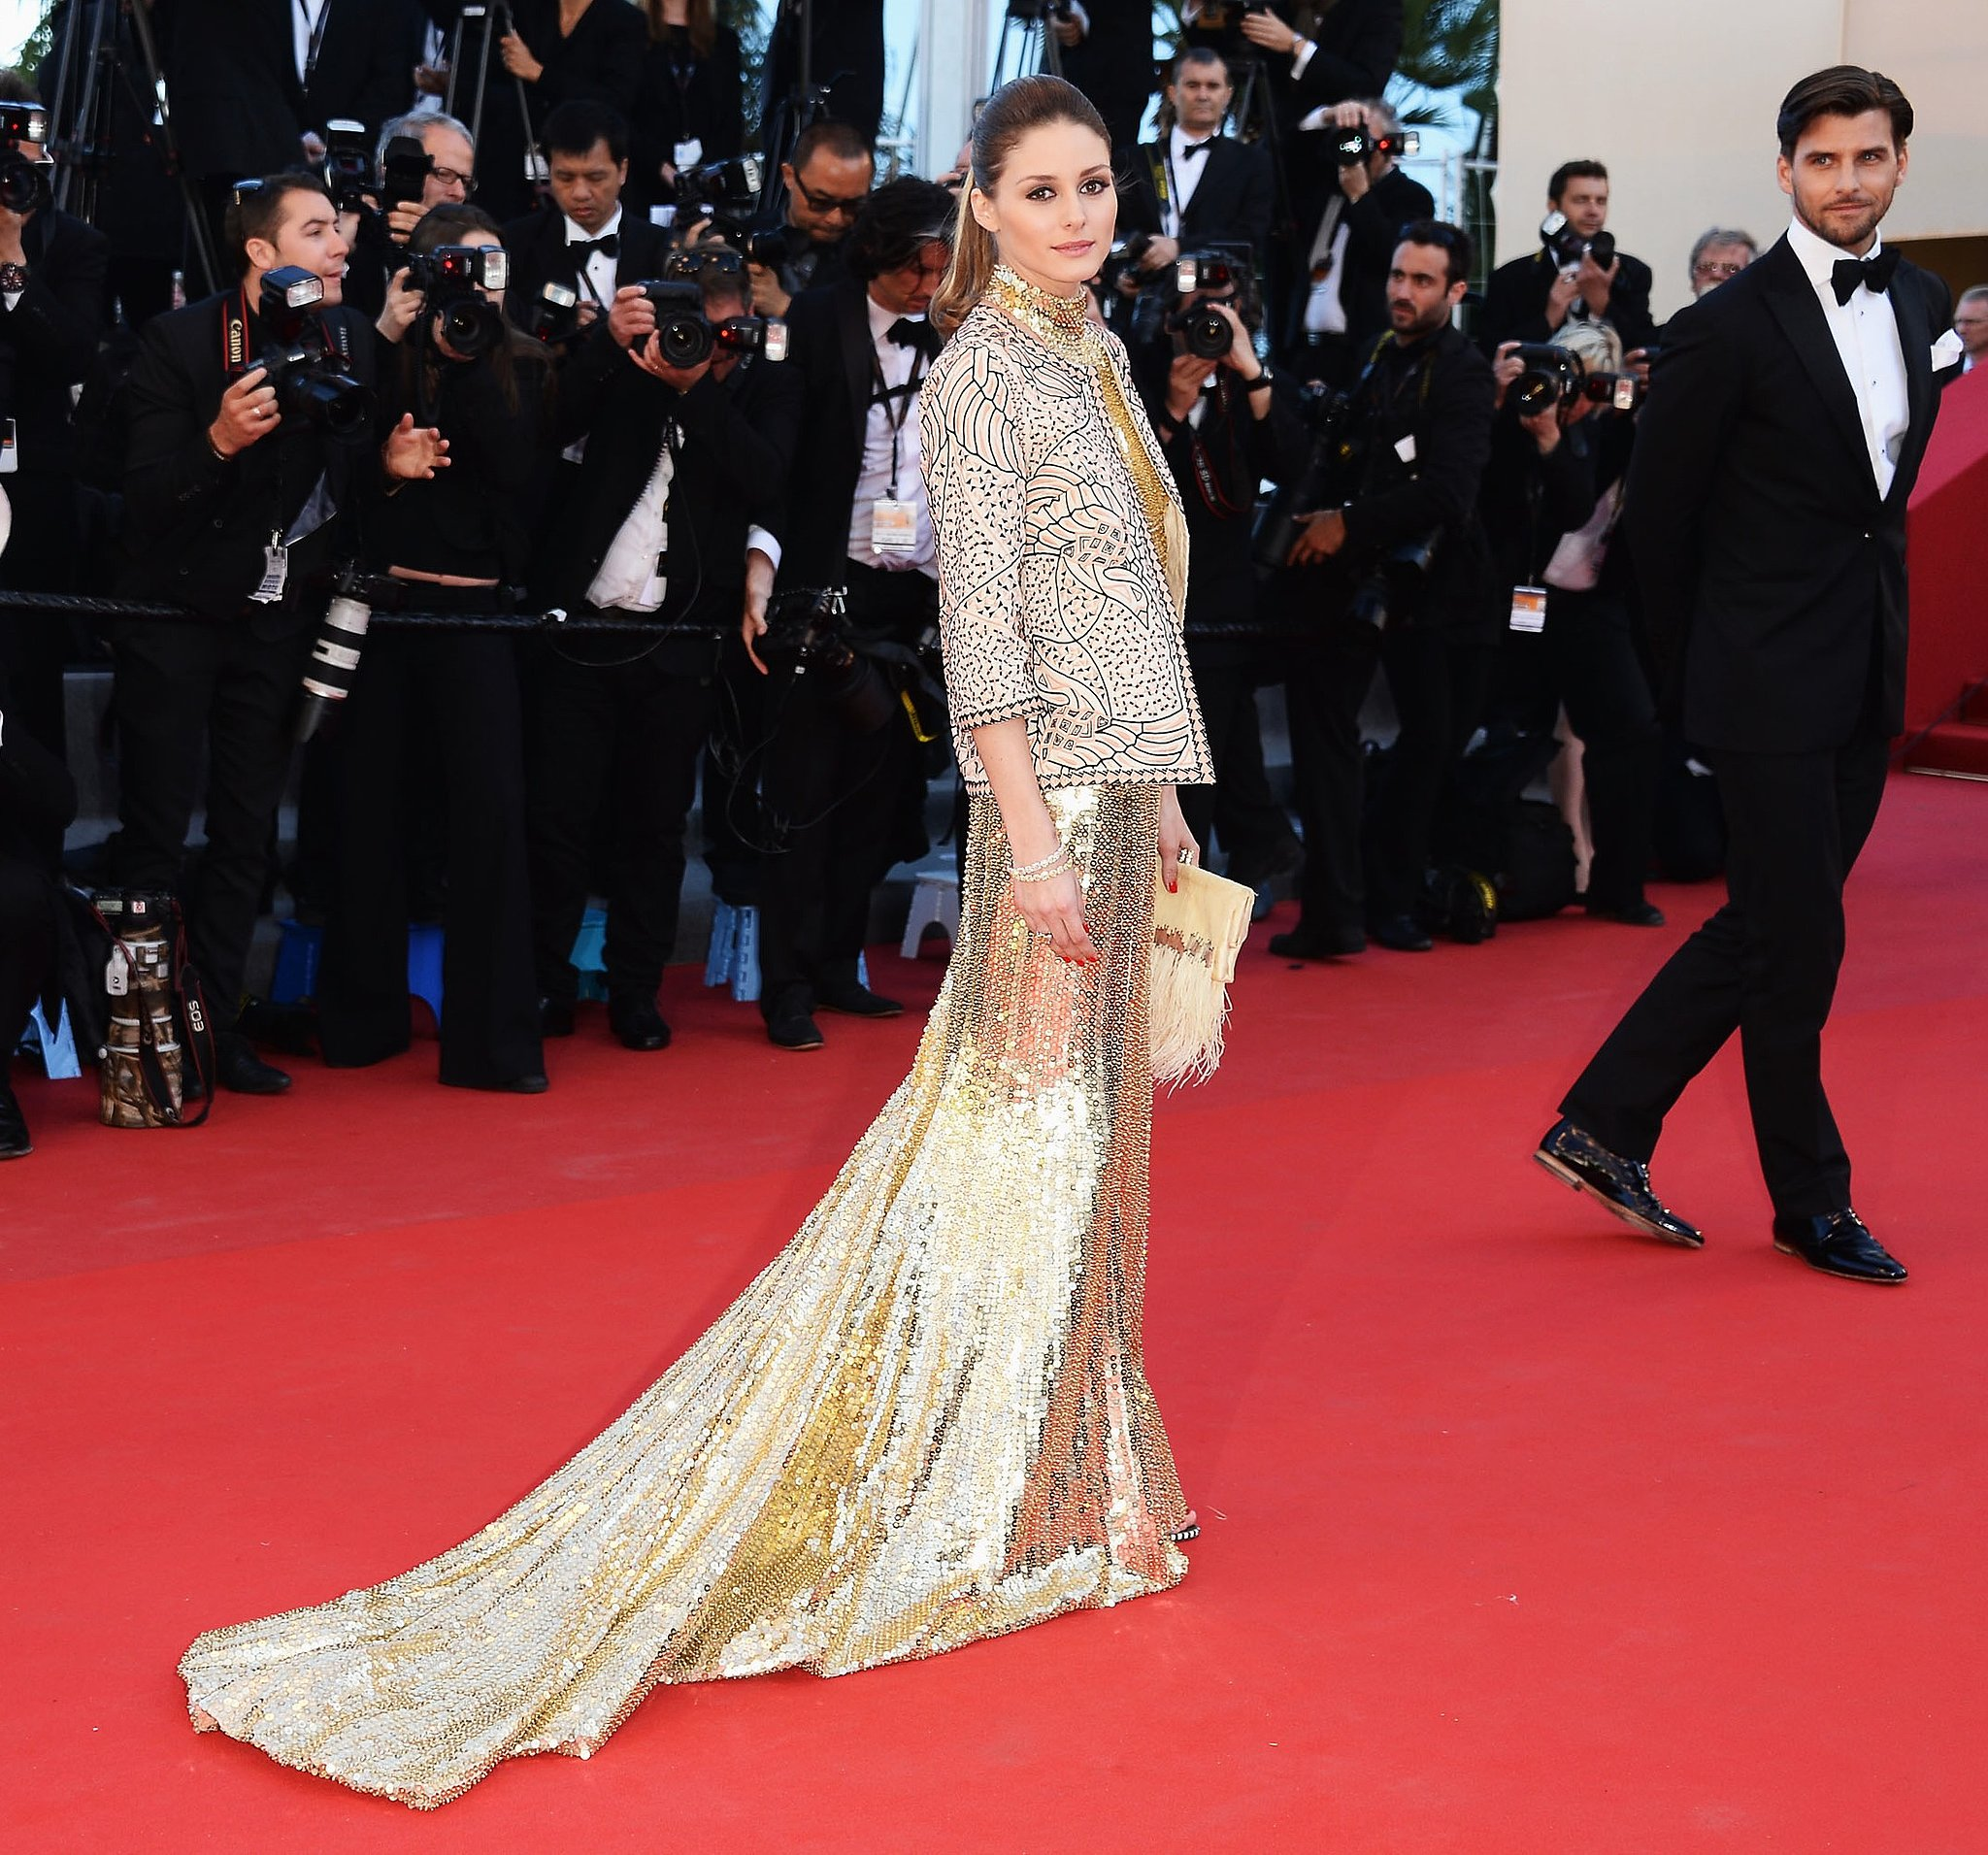 At the premiere of The Immigrant at Cannes, Olivia Palermo glowed in a gold sequined gown, topped with an exquisite jacket and finished with a feathery clutch.